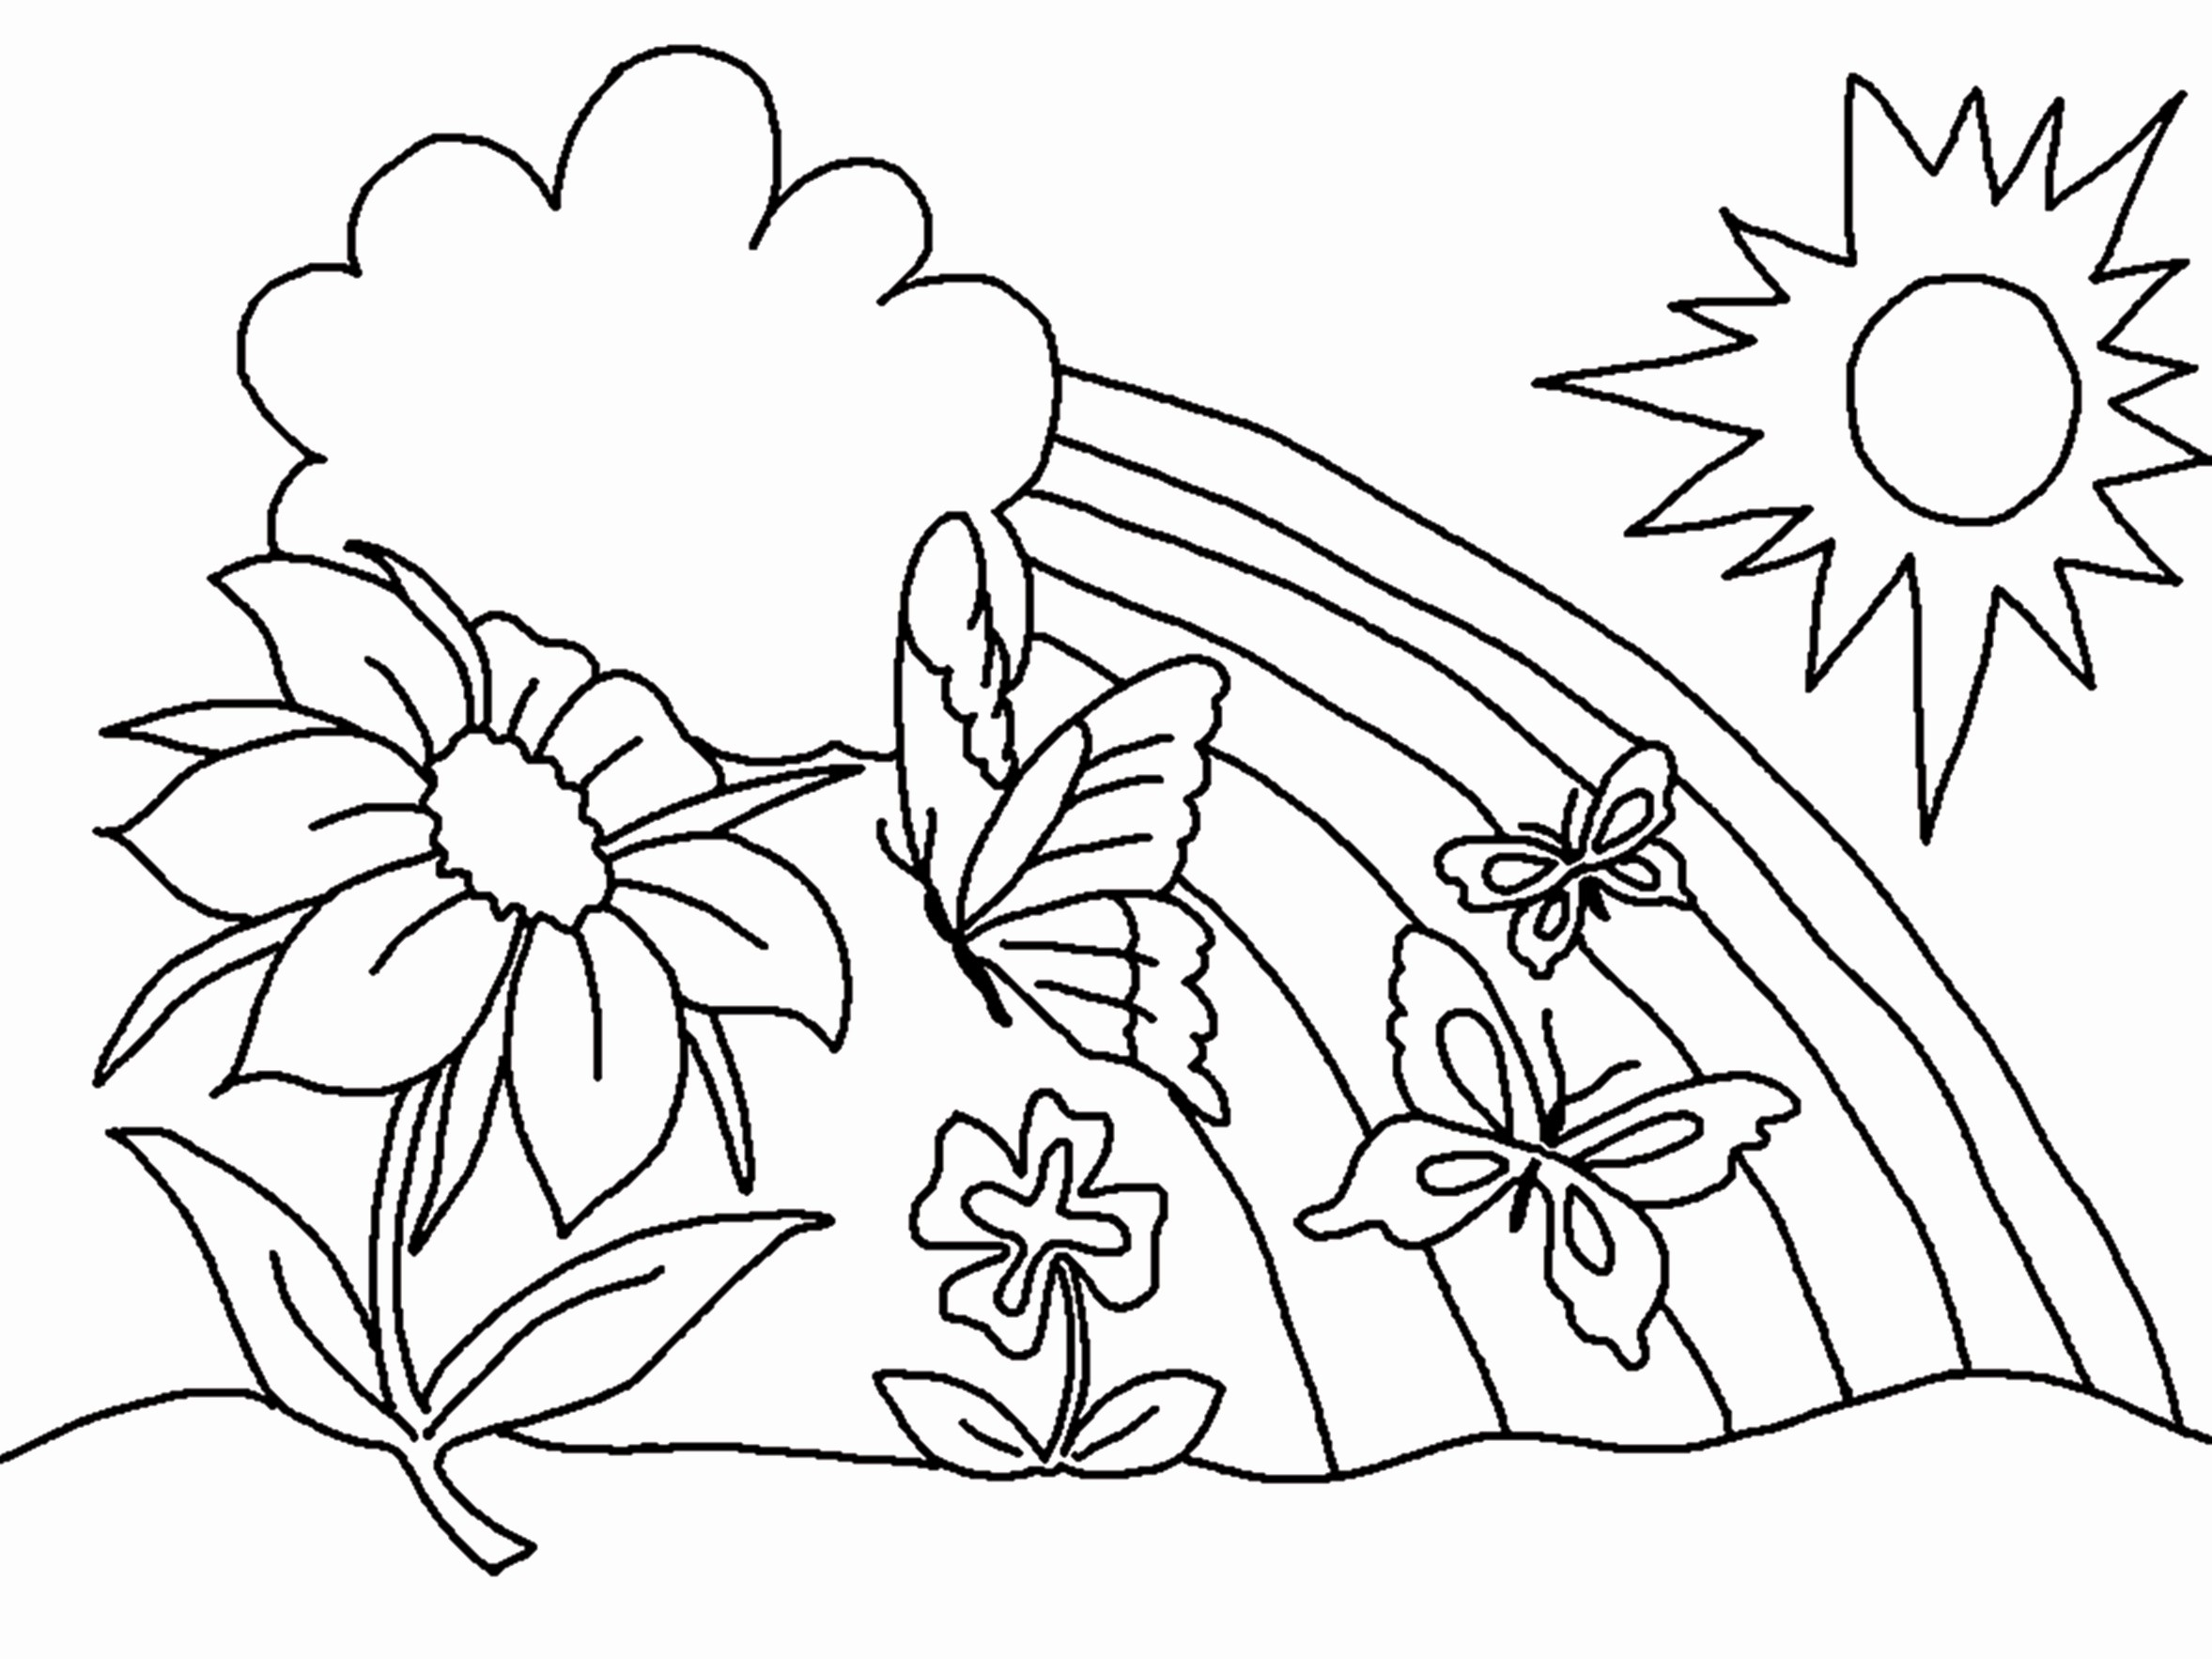 Teddy Bear Coloring Pages  Printable 8m - Free For kids